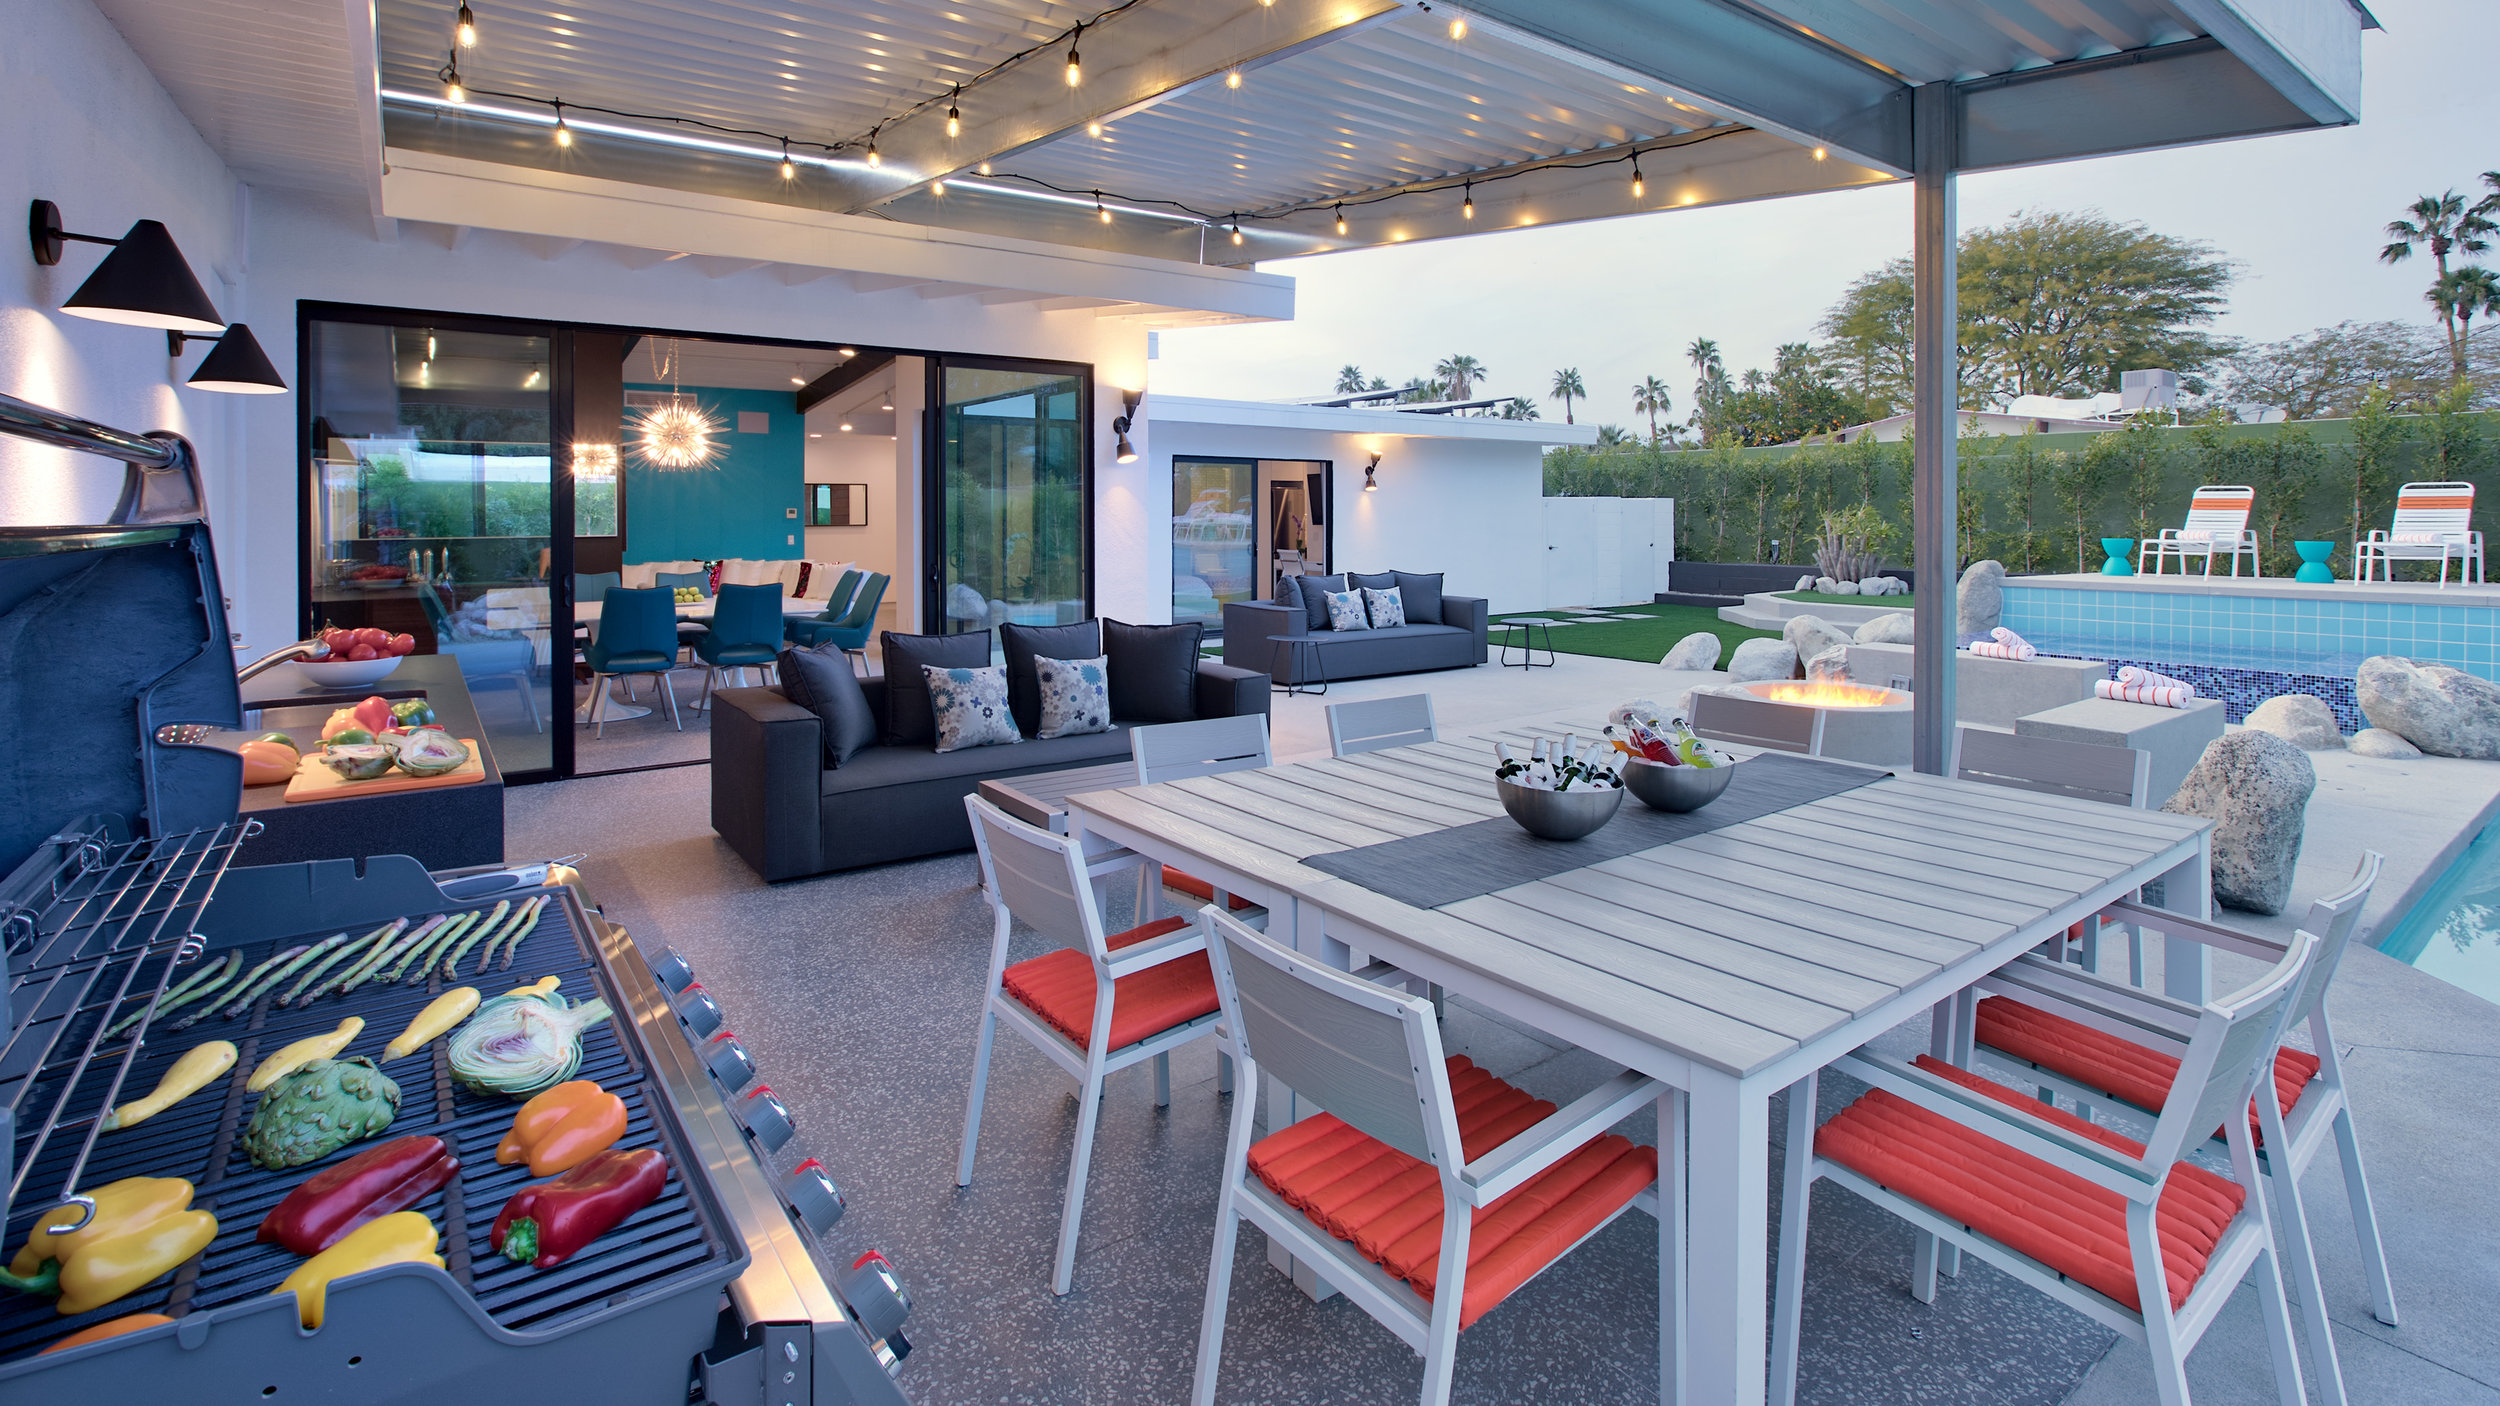 Covered outdoor dining/lounge. Gas grill and outdoor kitchenette